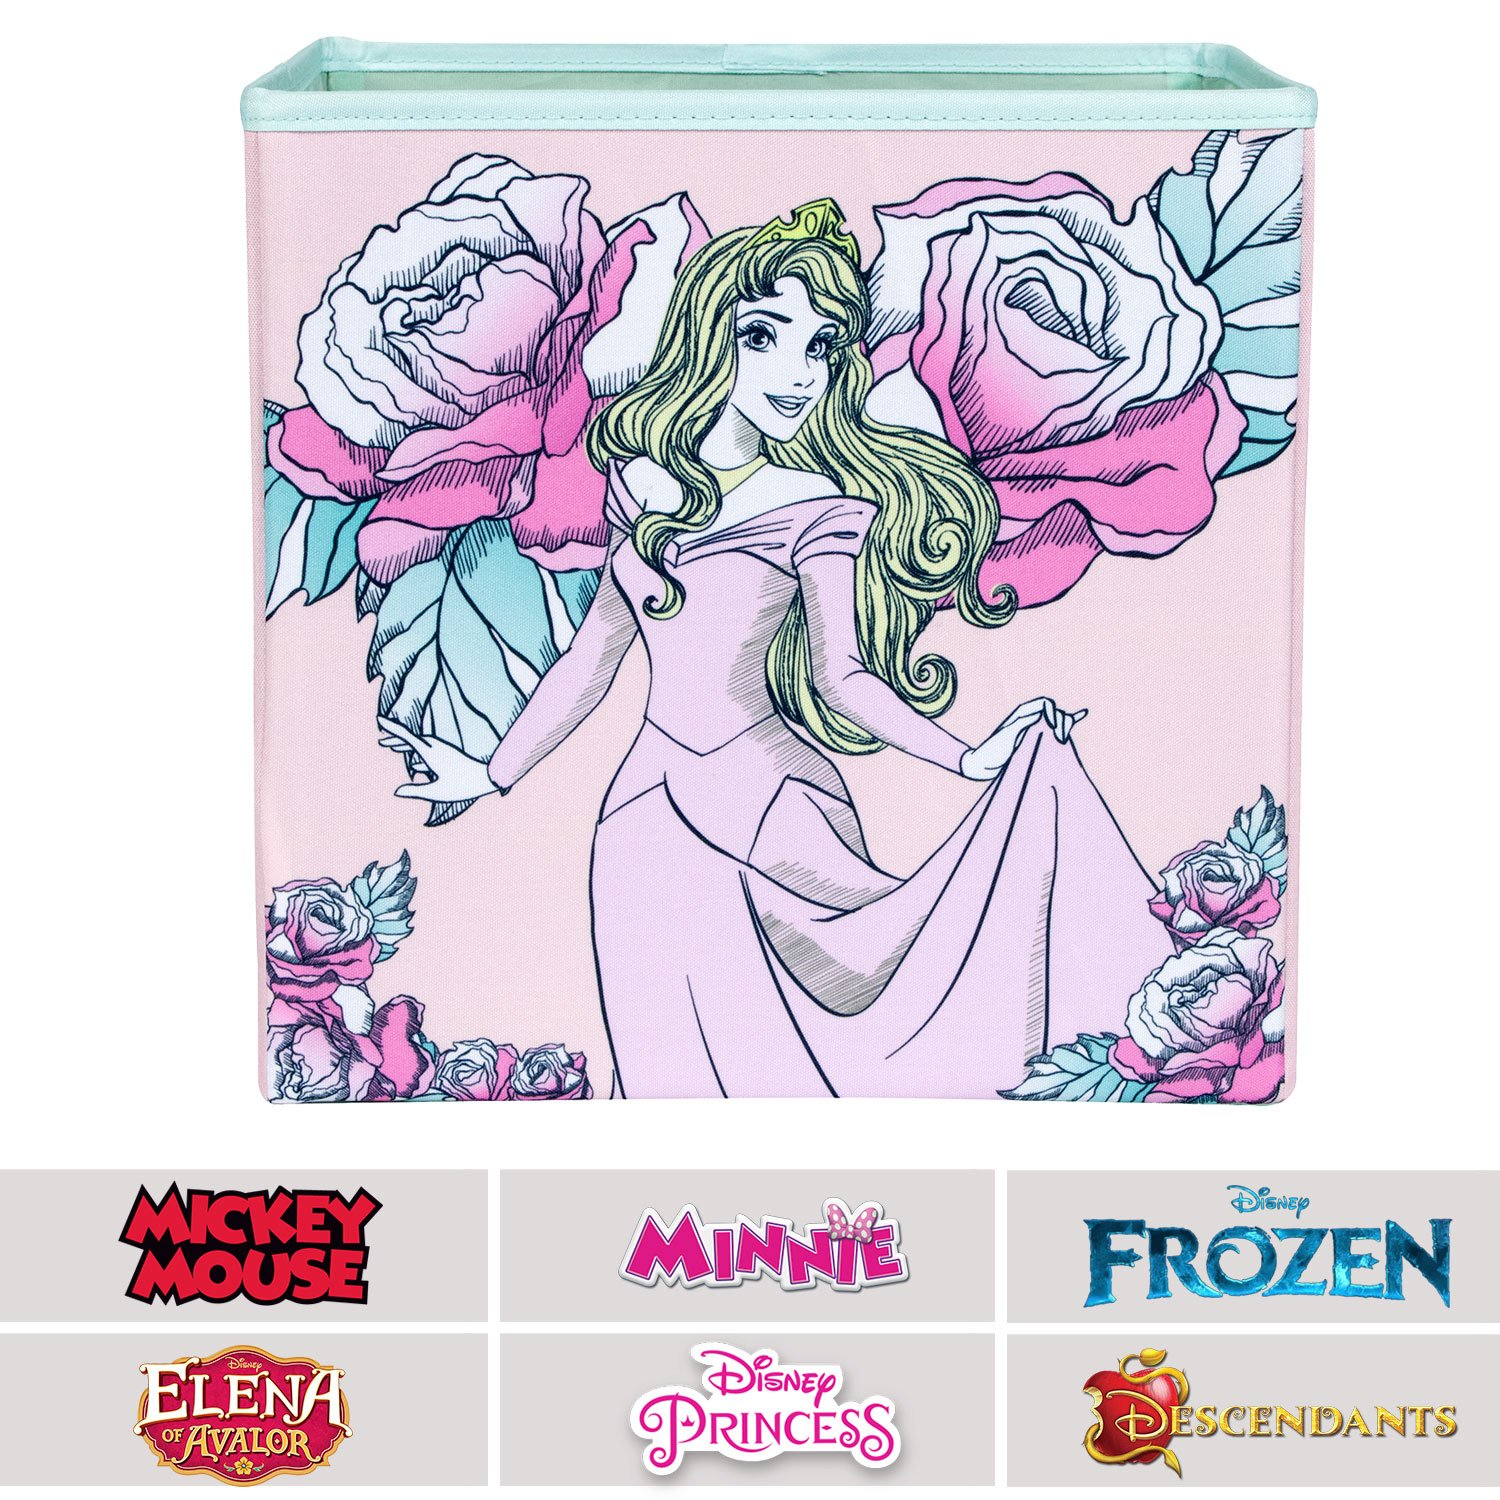 Sleeping Beauty Collapsible Storage Bin by Disney - Cube Organizer for Closet, Kids Bedroom Box, Nursery Chest - Foldable Home Decor Basket Container with Strong Handles and Design